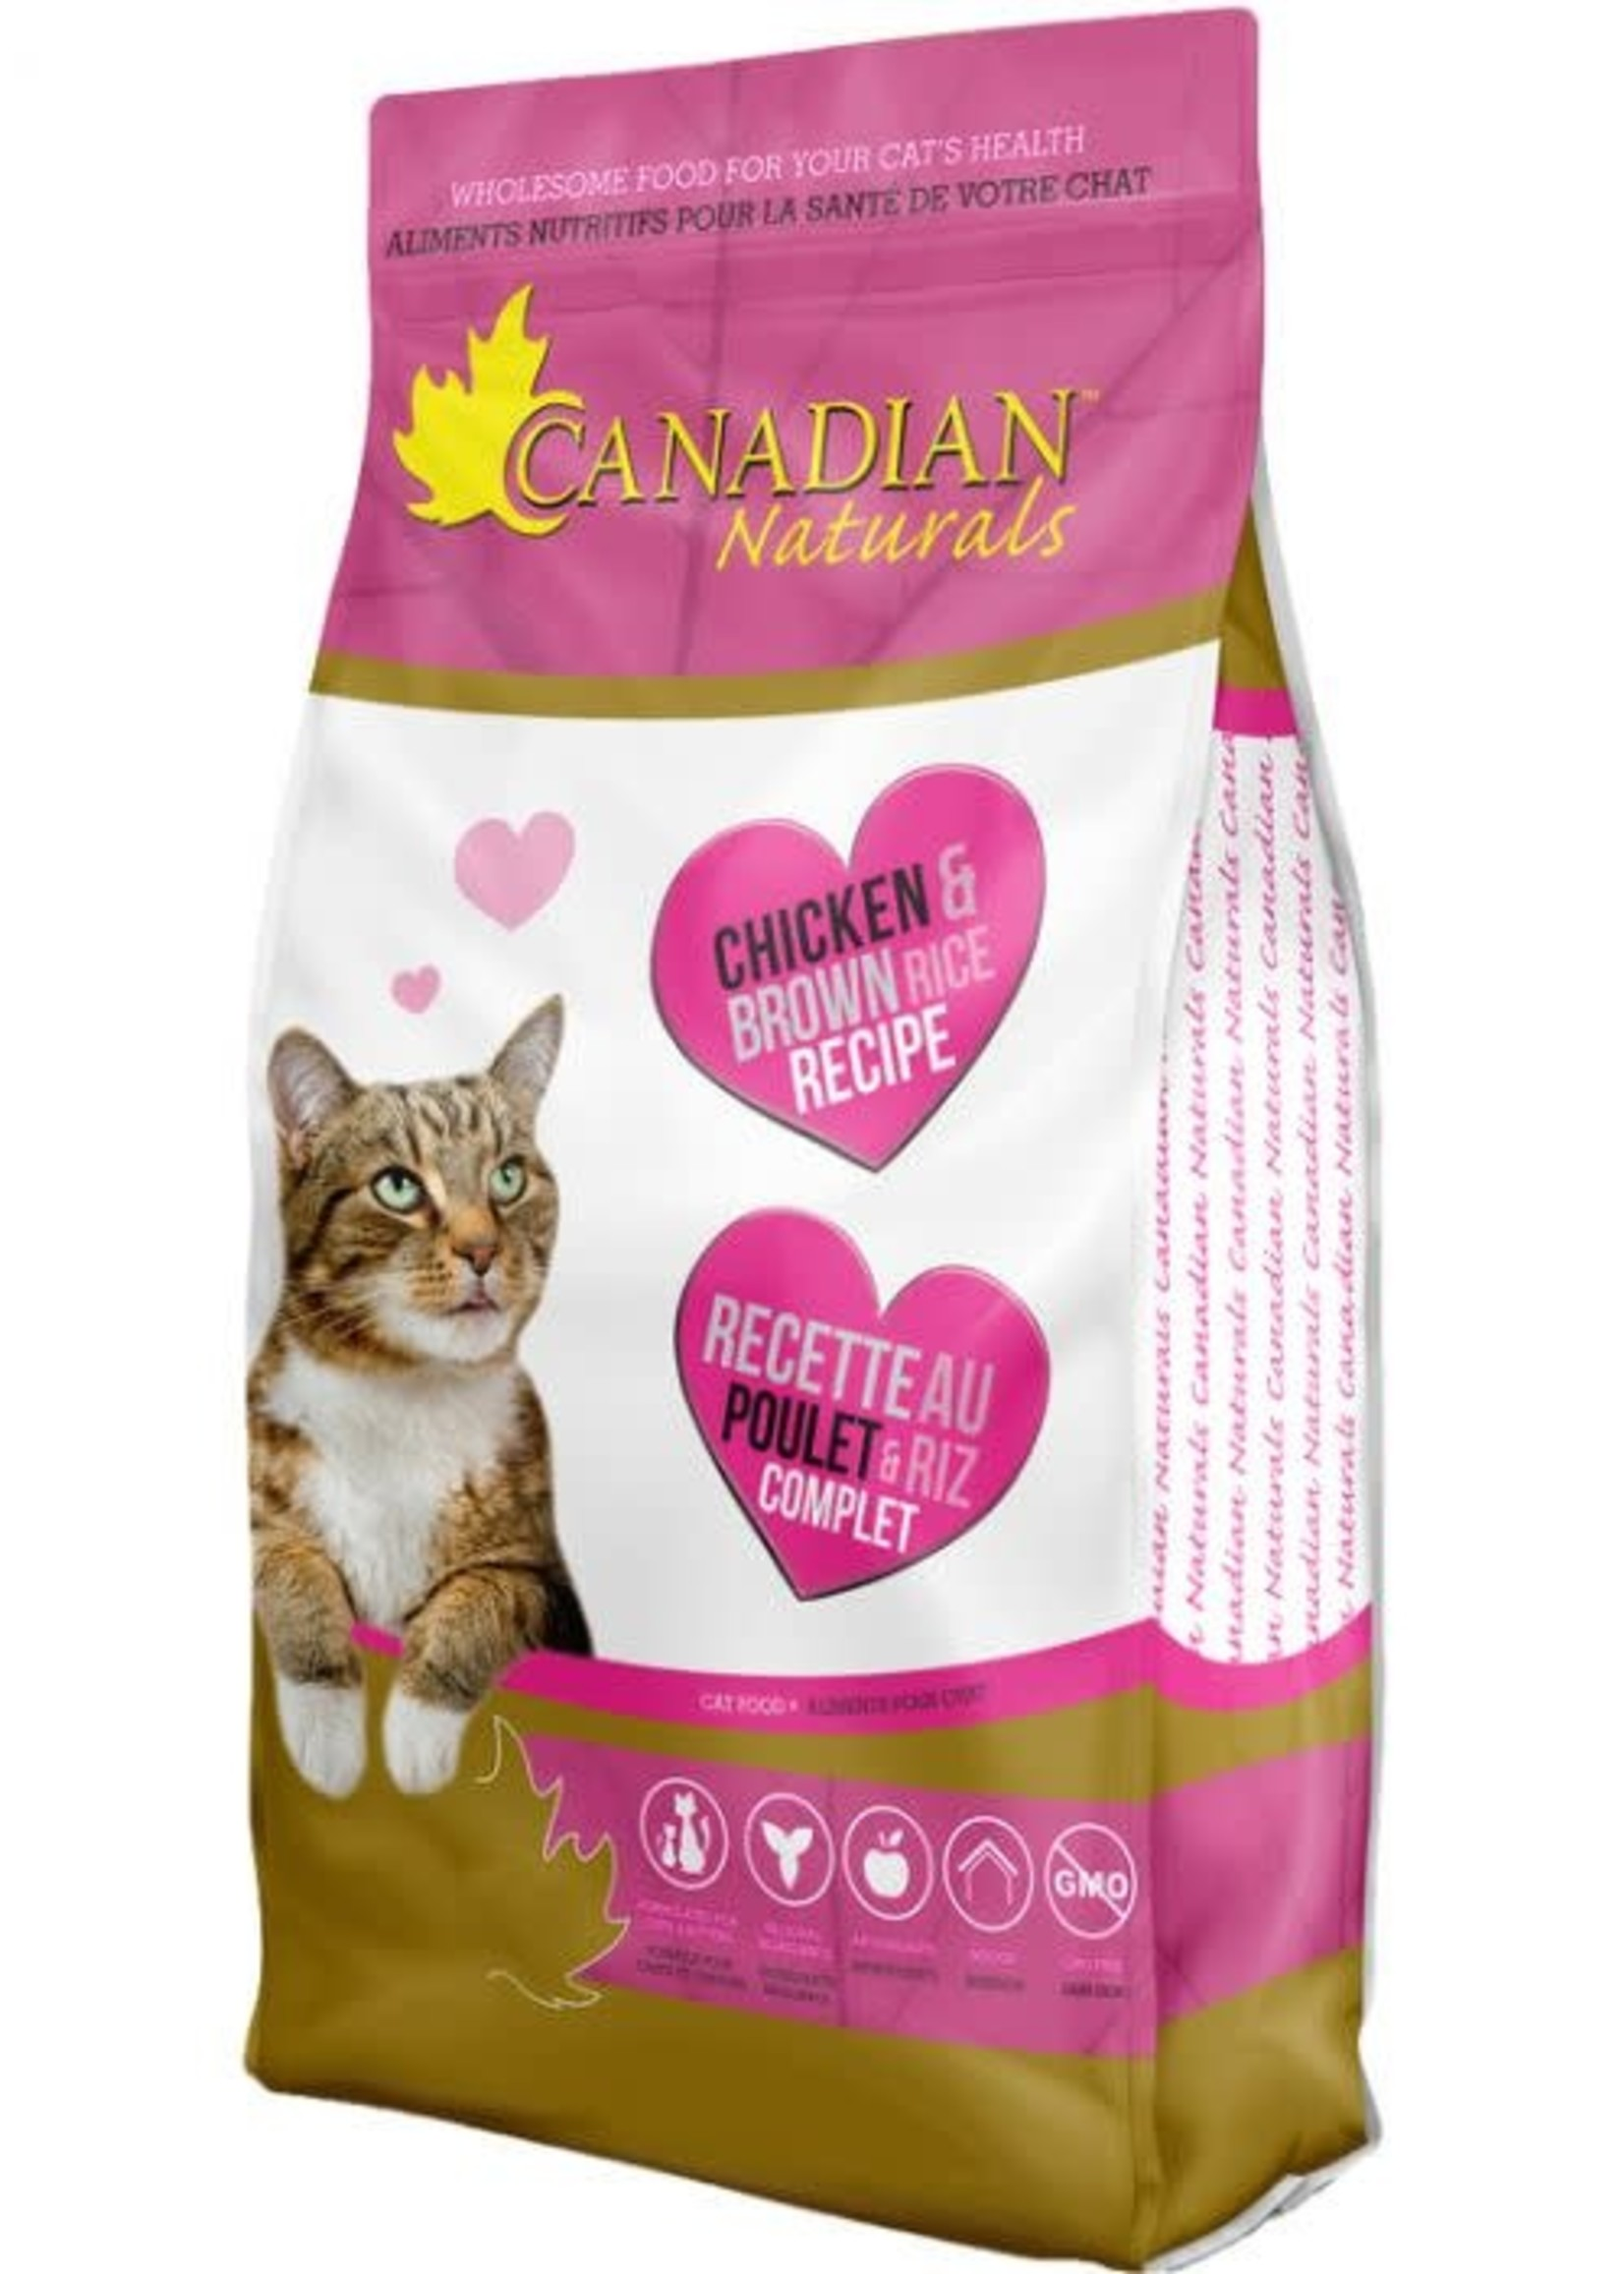 Canadian Naturals® CANADIAN NATURALS CHICKEN & BROWN RICE RECIPE 15lbs